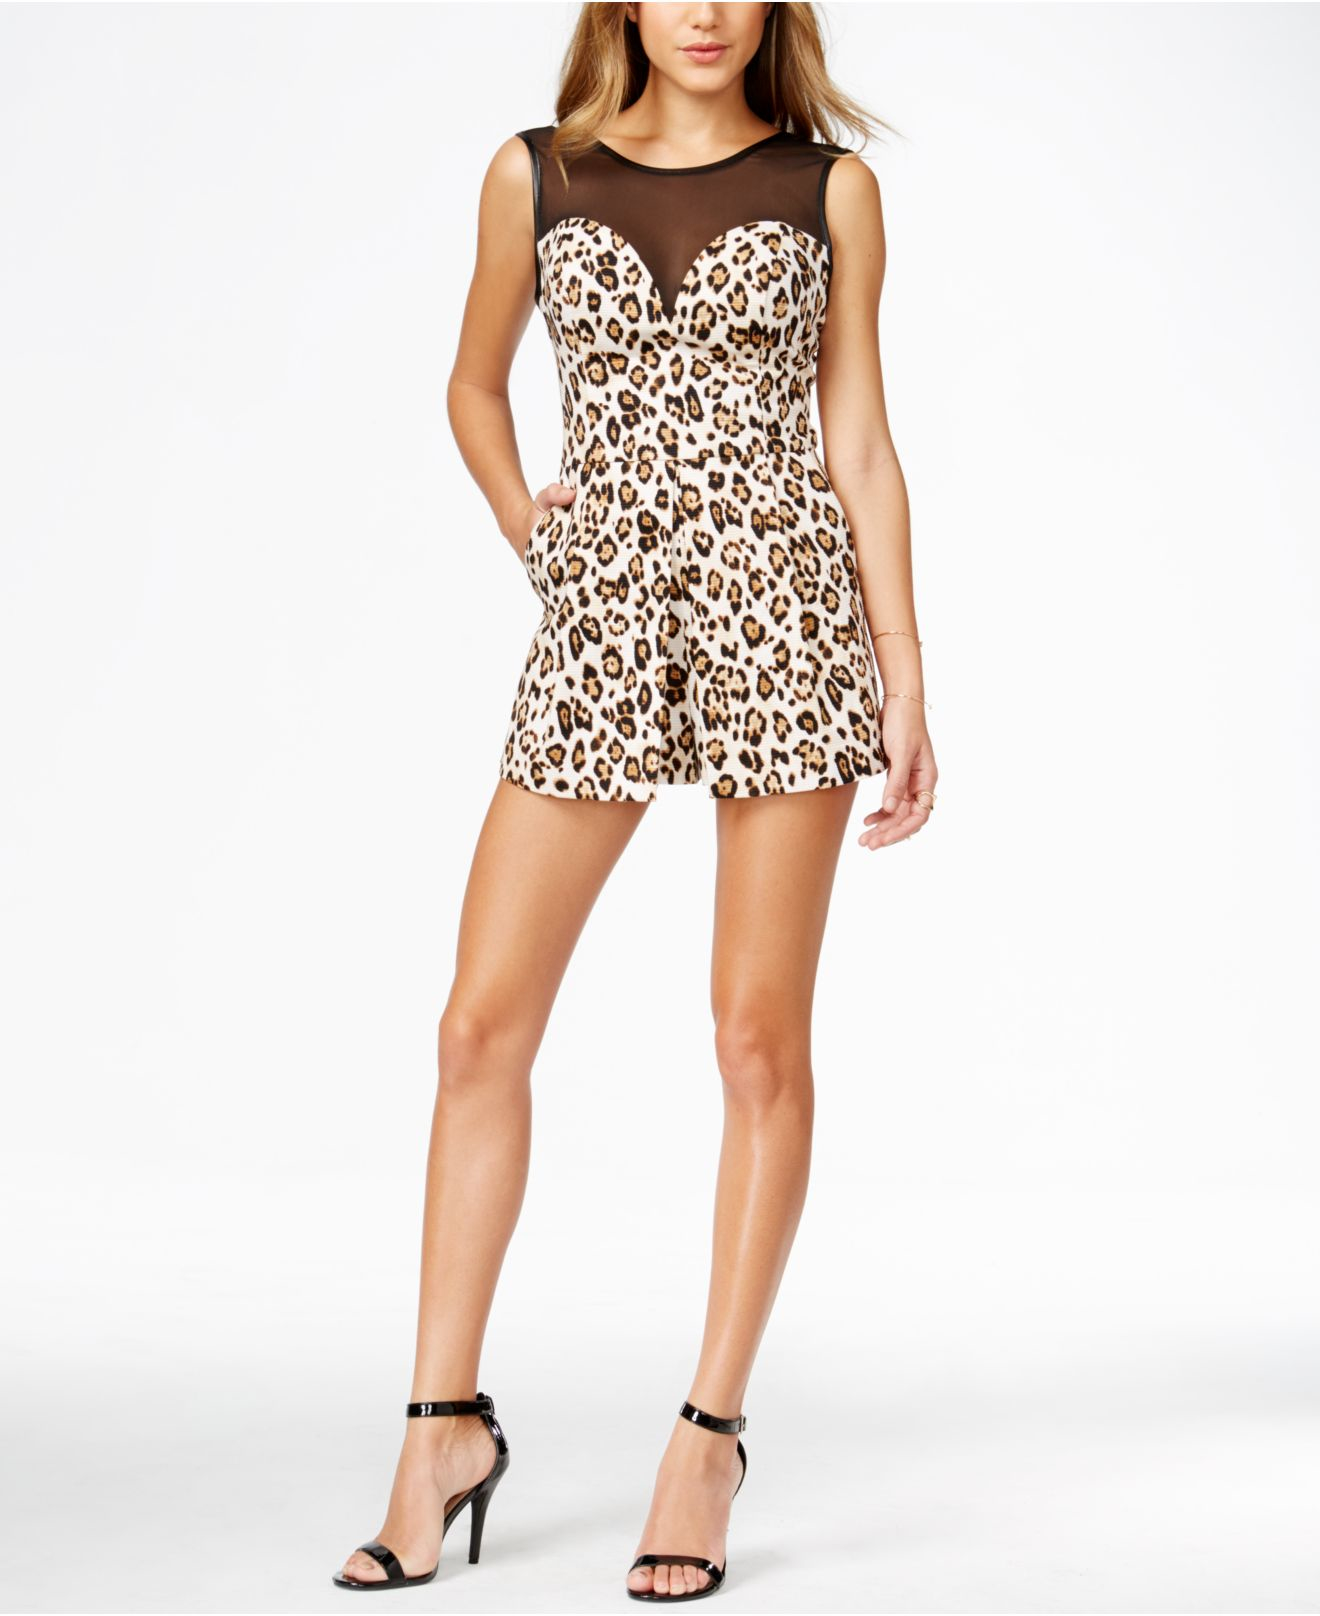 1dbcd96e8c5 Lyst - Guess Animal-print Illusion Romper in Natural